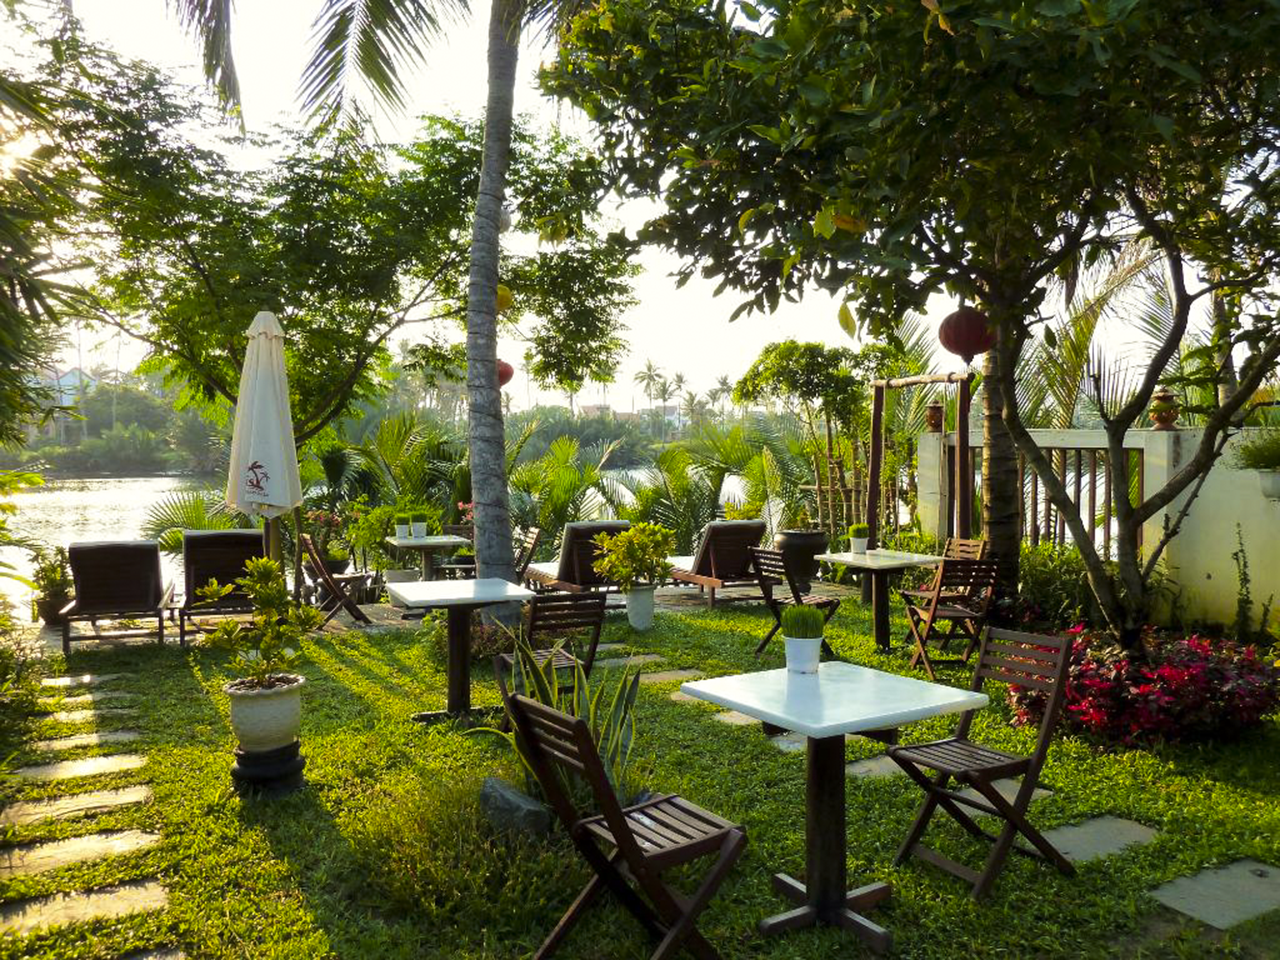 Best Price on Riverside Oasis Villa Hoi An in Hoi An + Reviews!